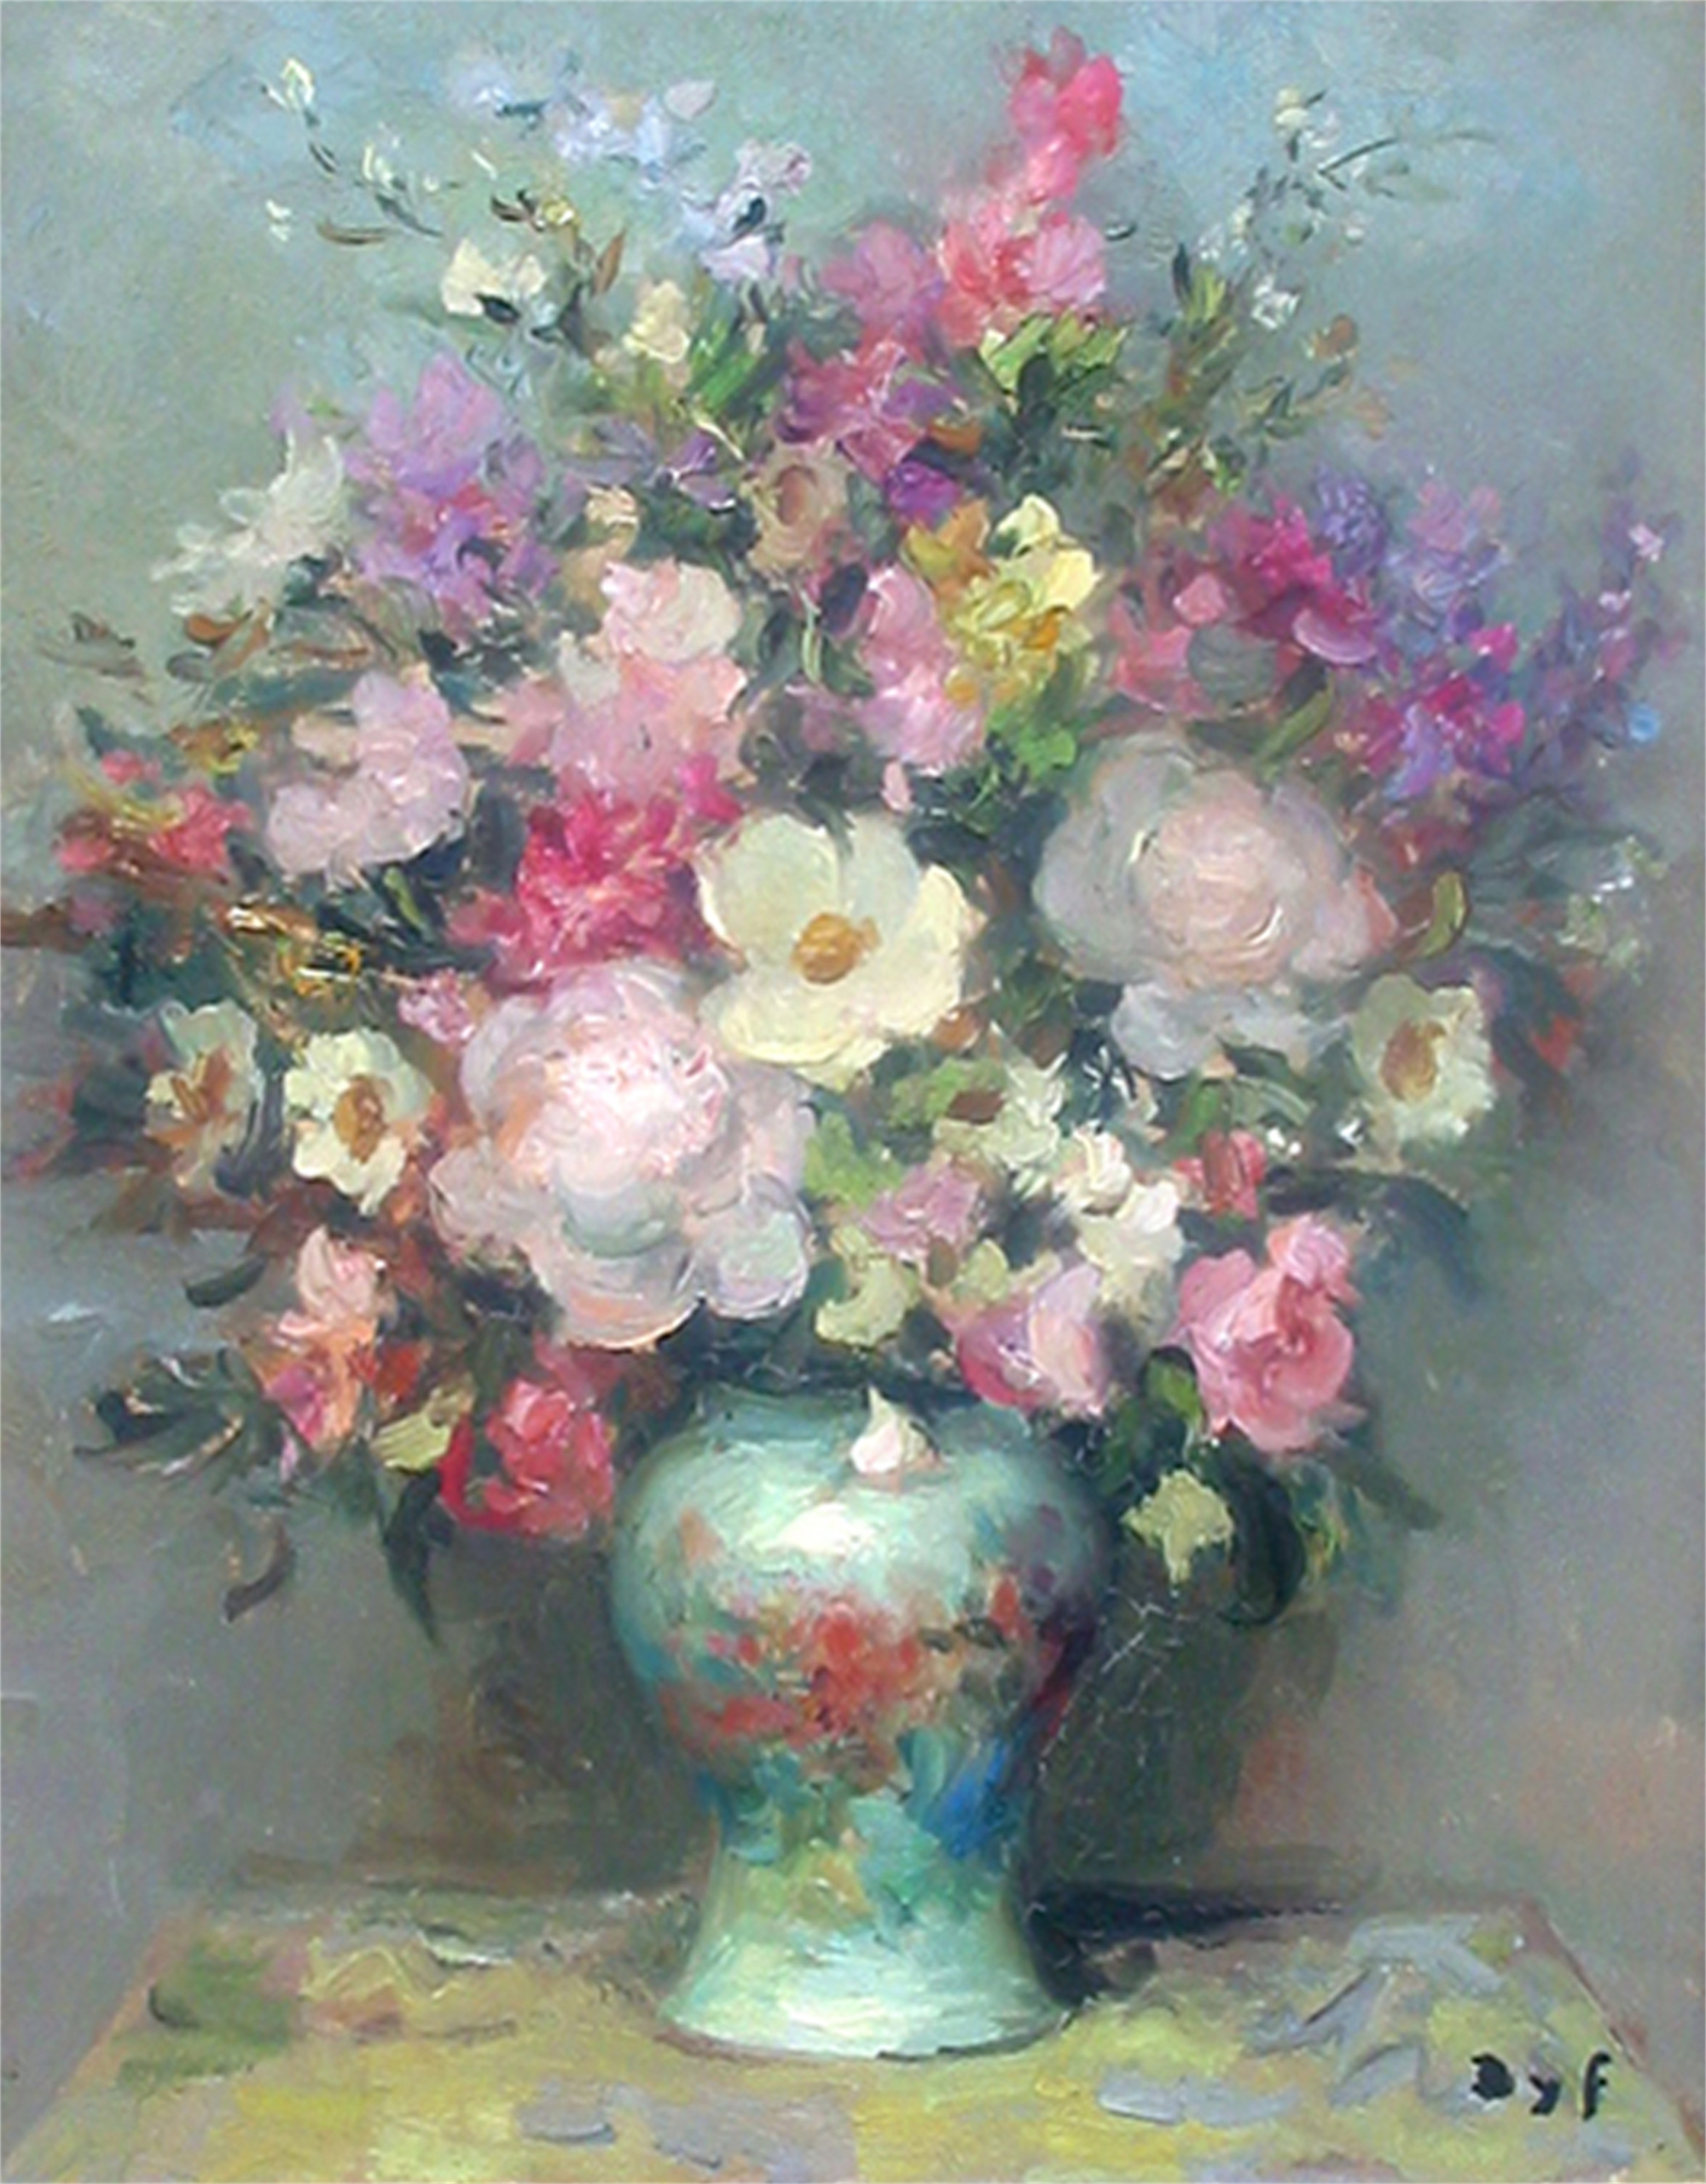 FLORAL IN PASTEL TONE by DYF